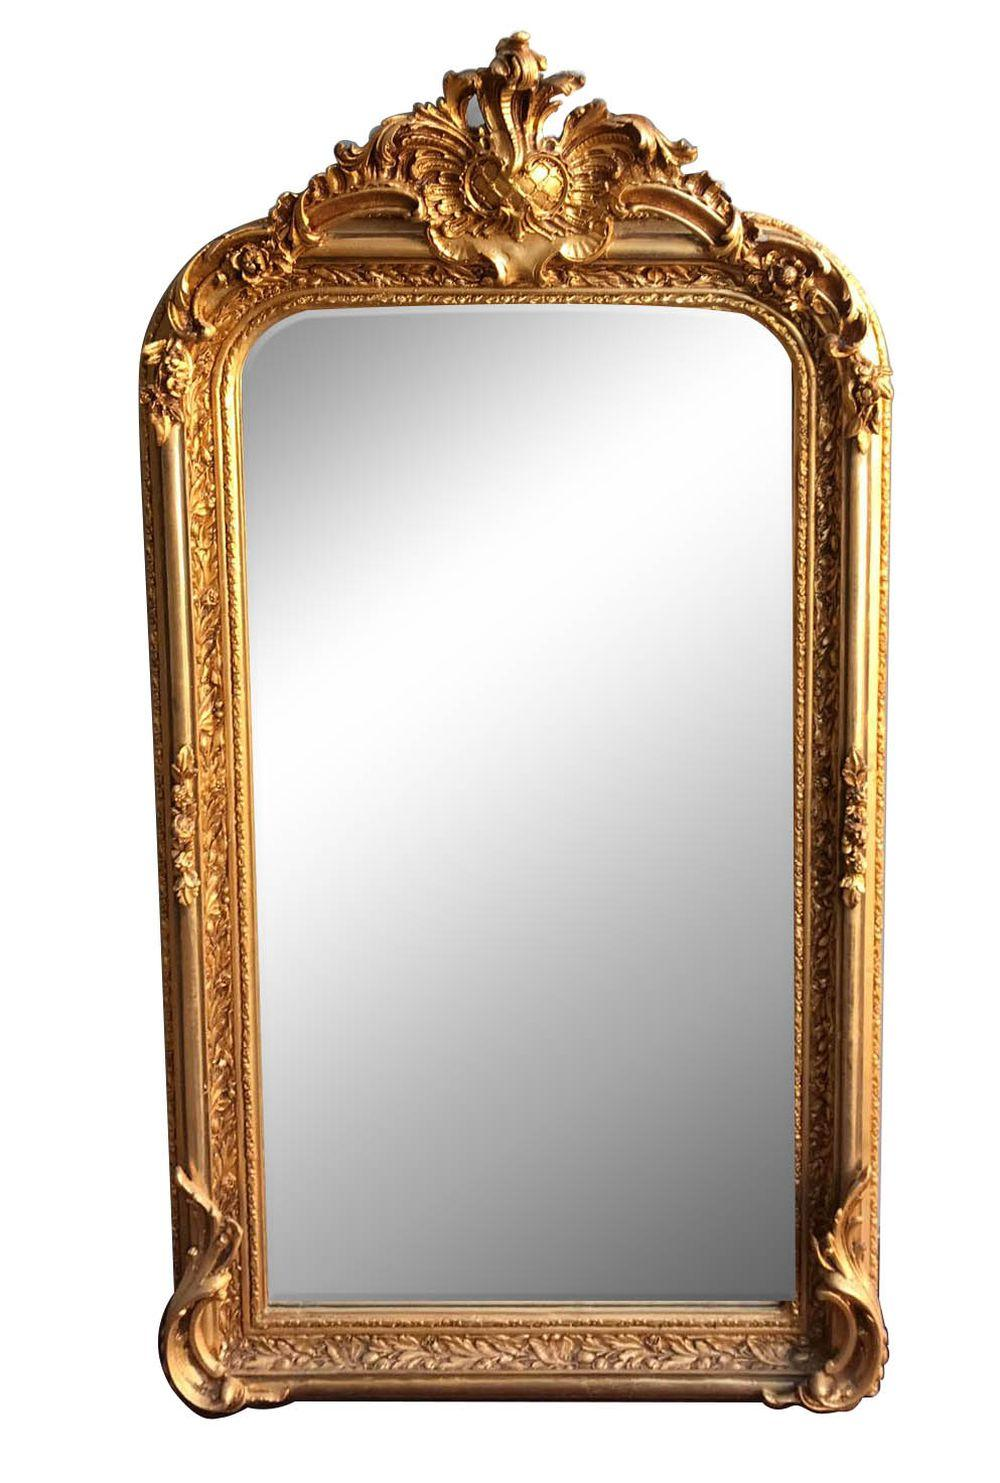 Lot 104: Louis XVI-style giltwood mirror